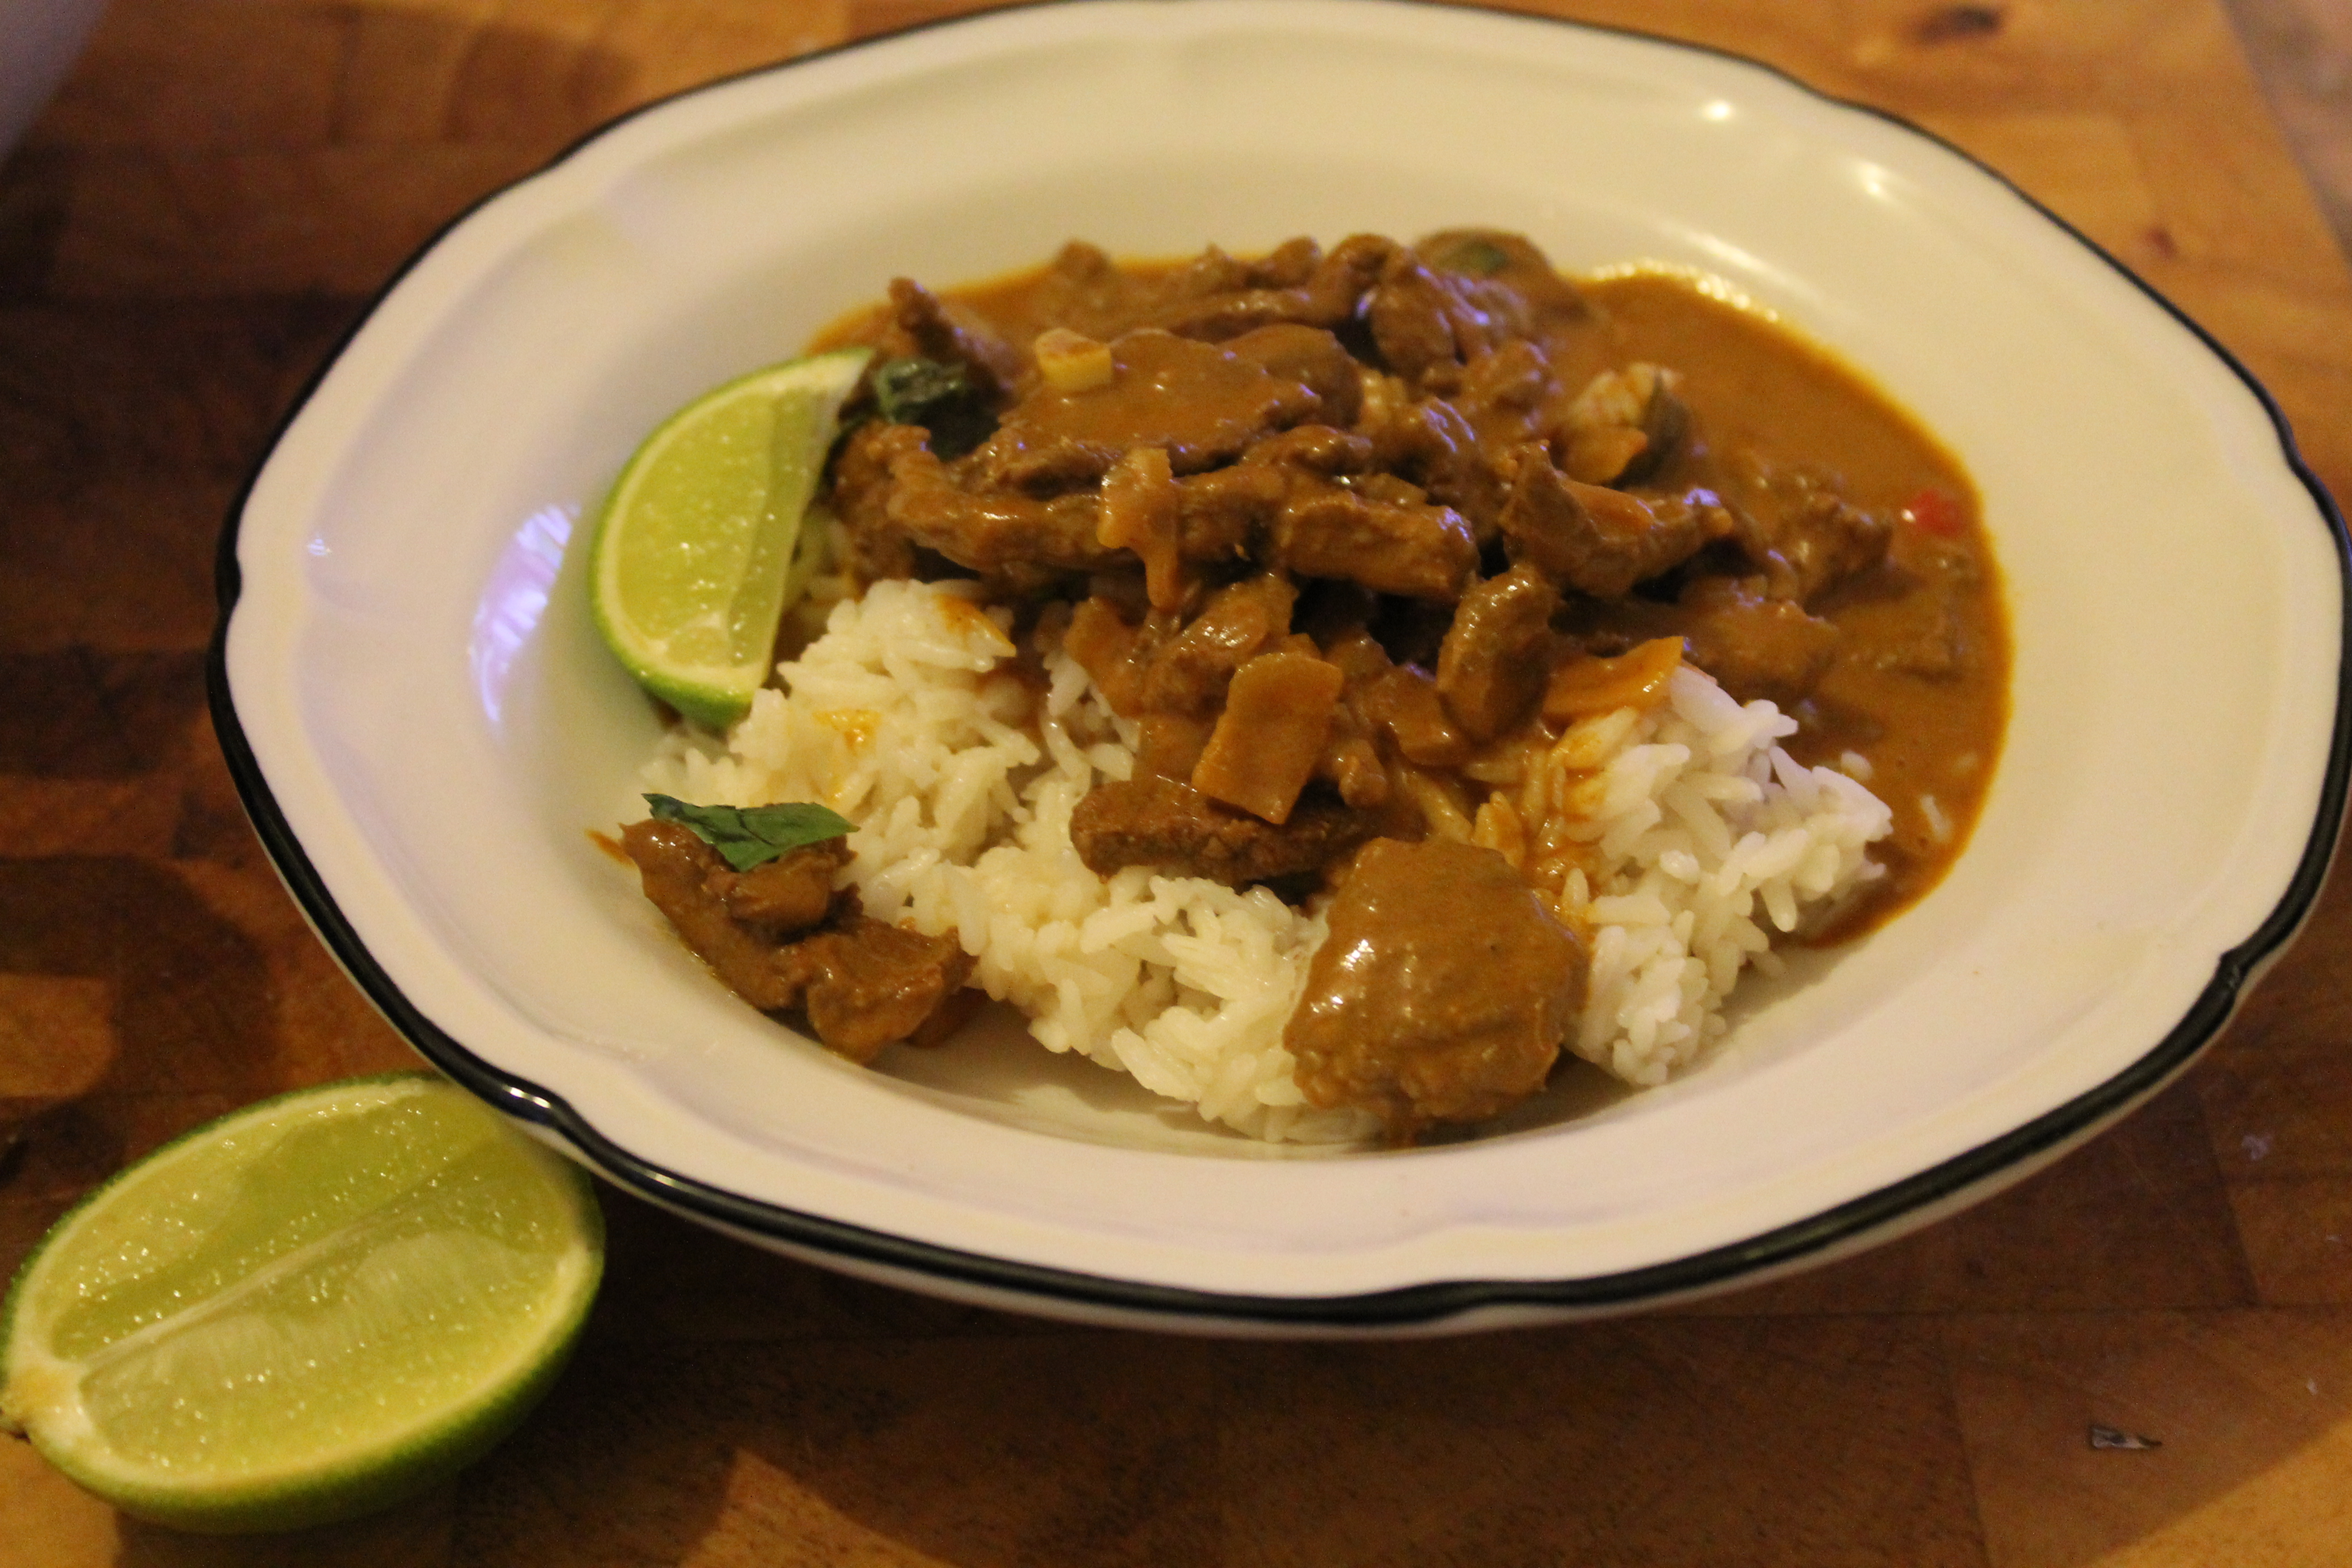 Beef penang curry what to have for dinner tonight for Hamburger dinner ideas for tonight